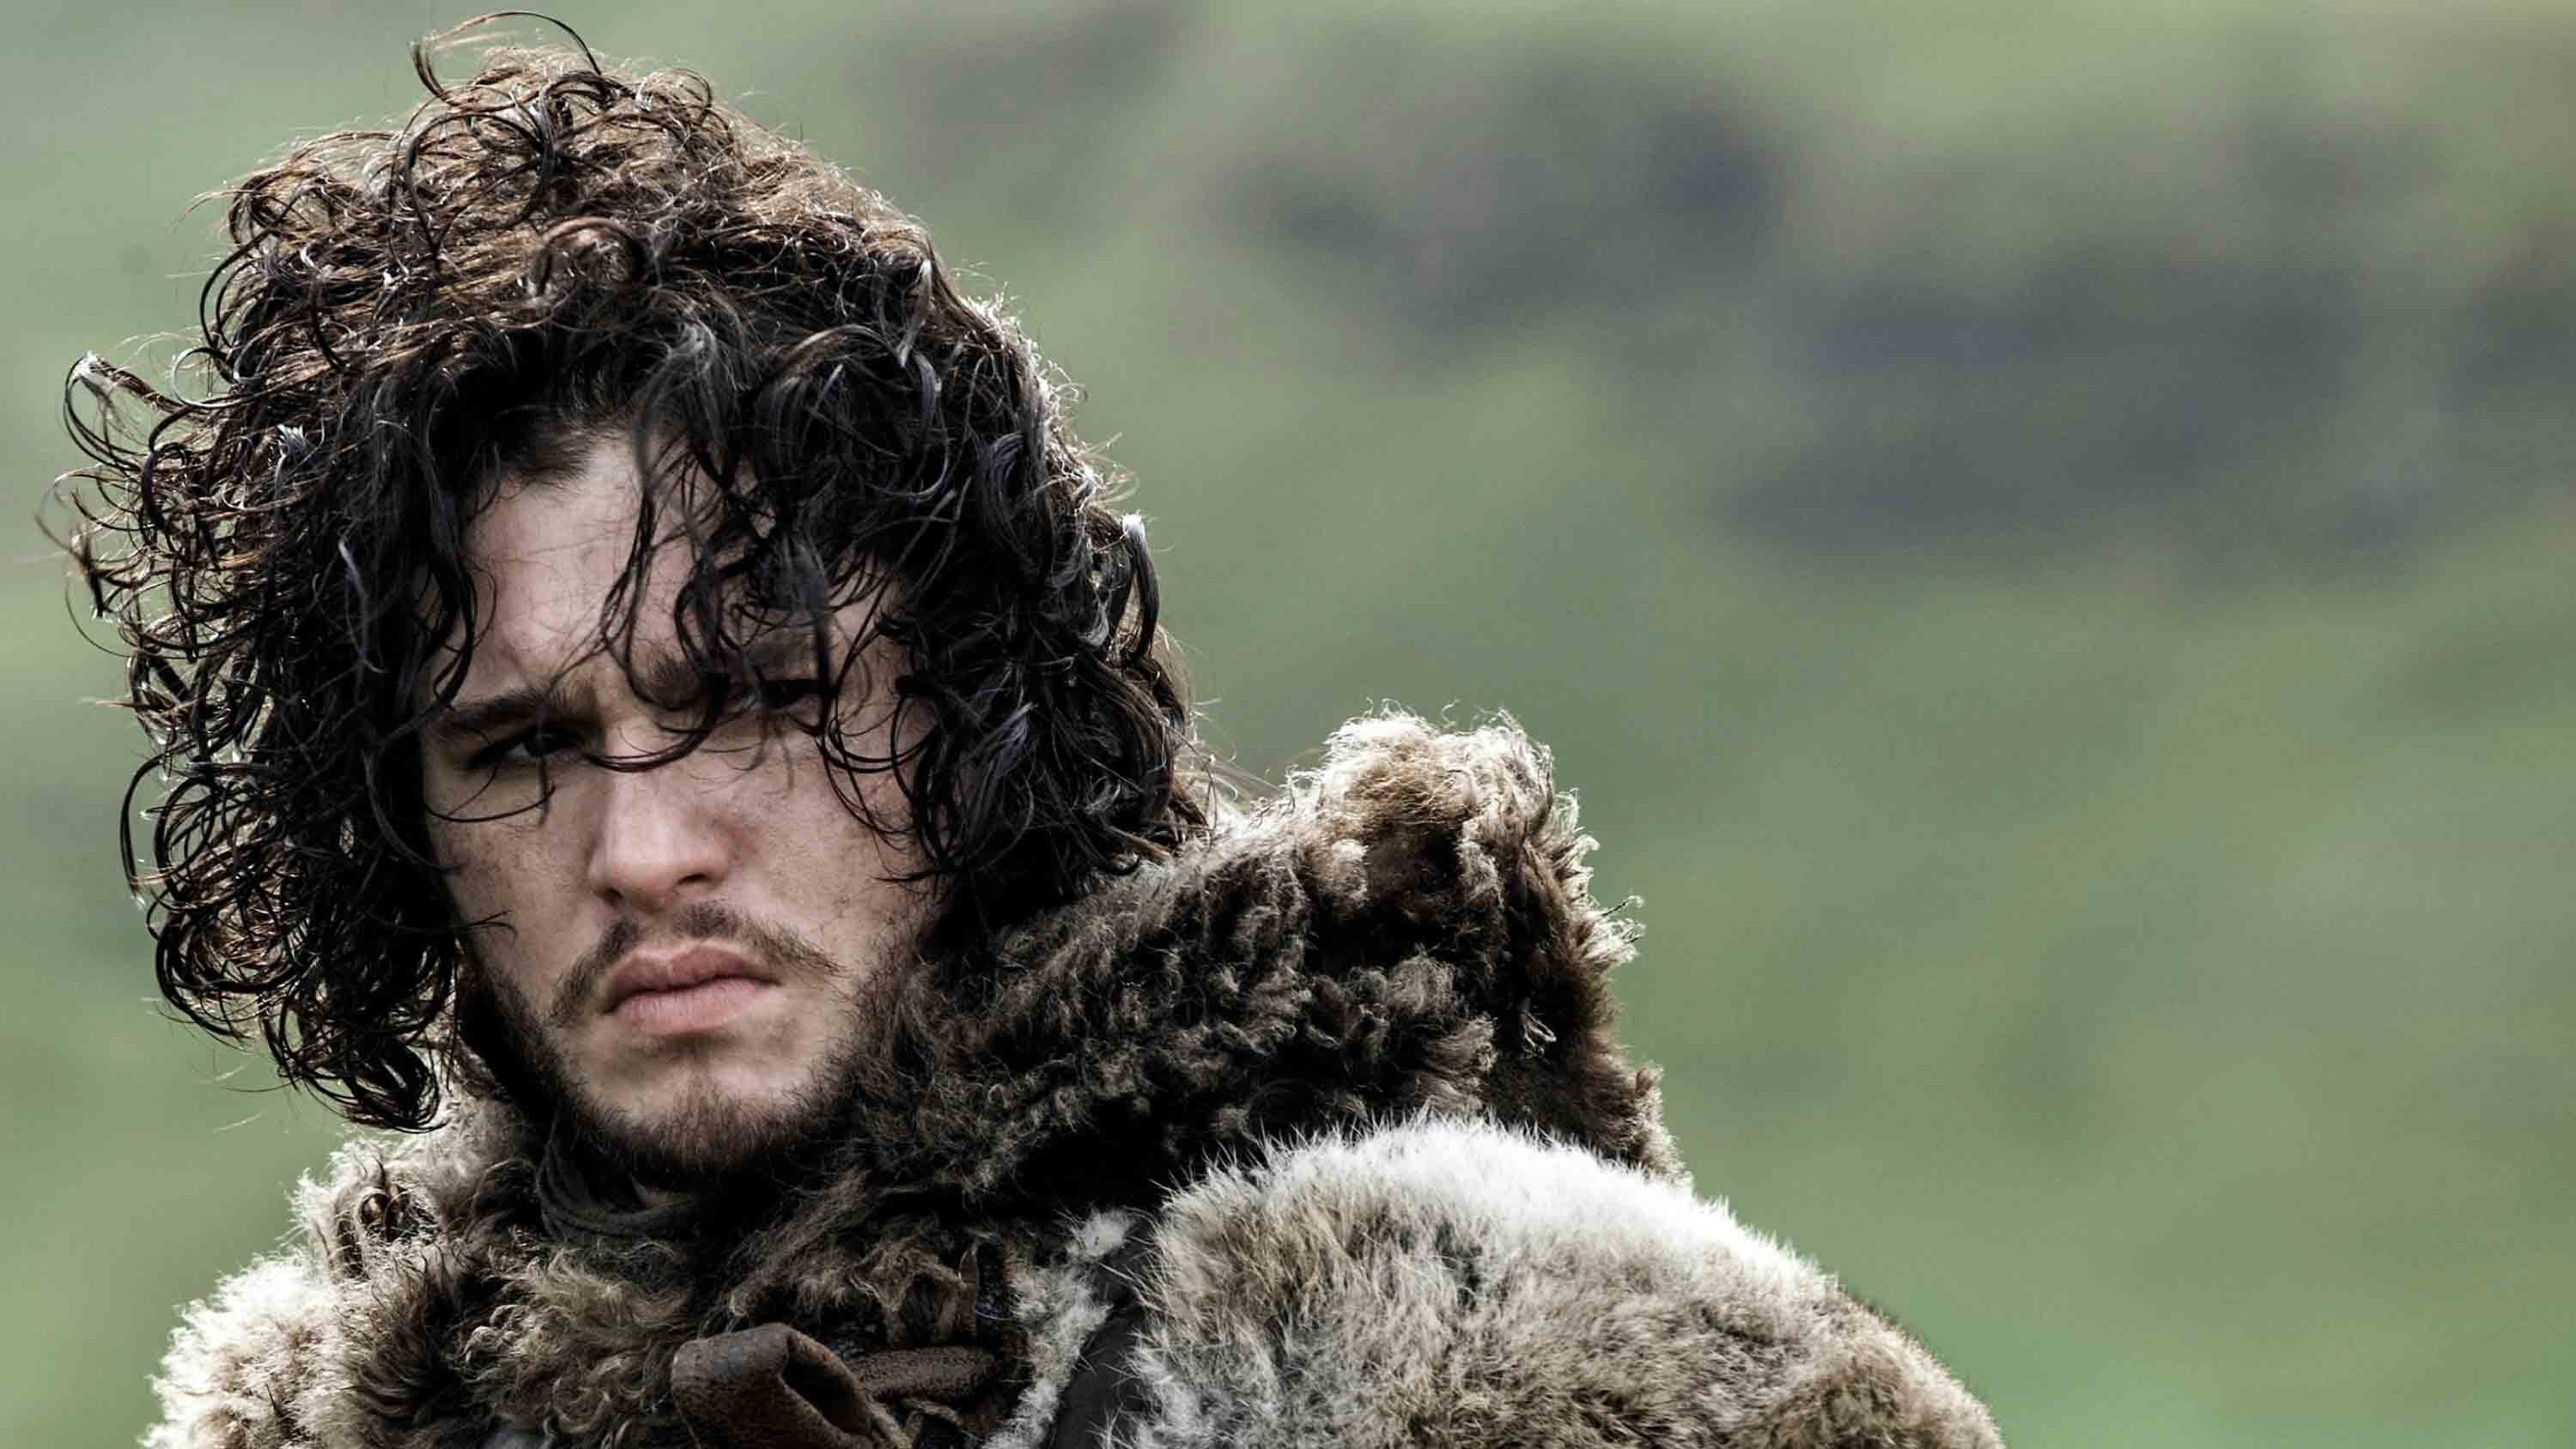 3000x1688 jon snow wallpapers hd